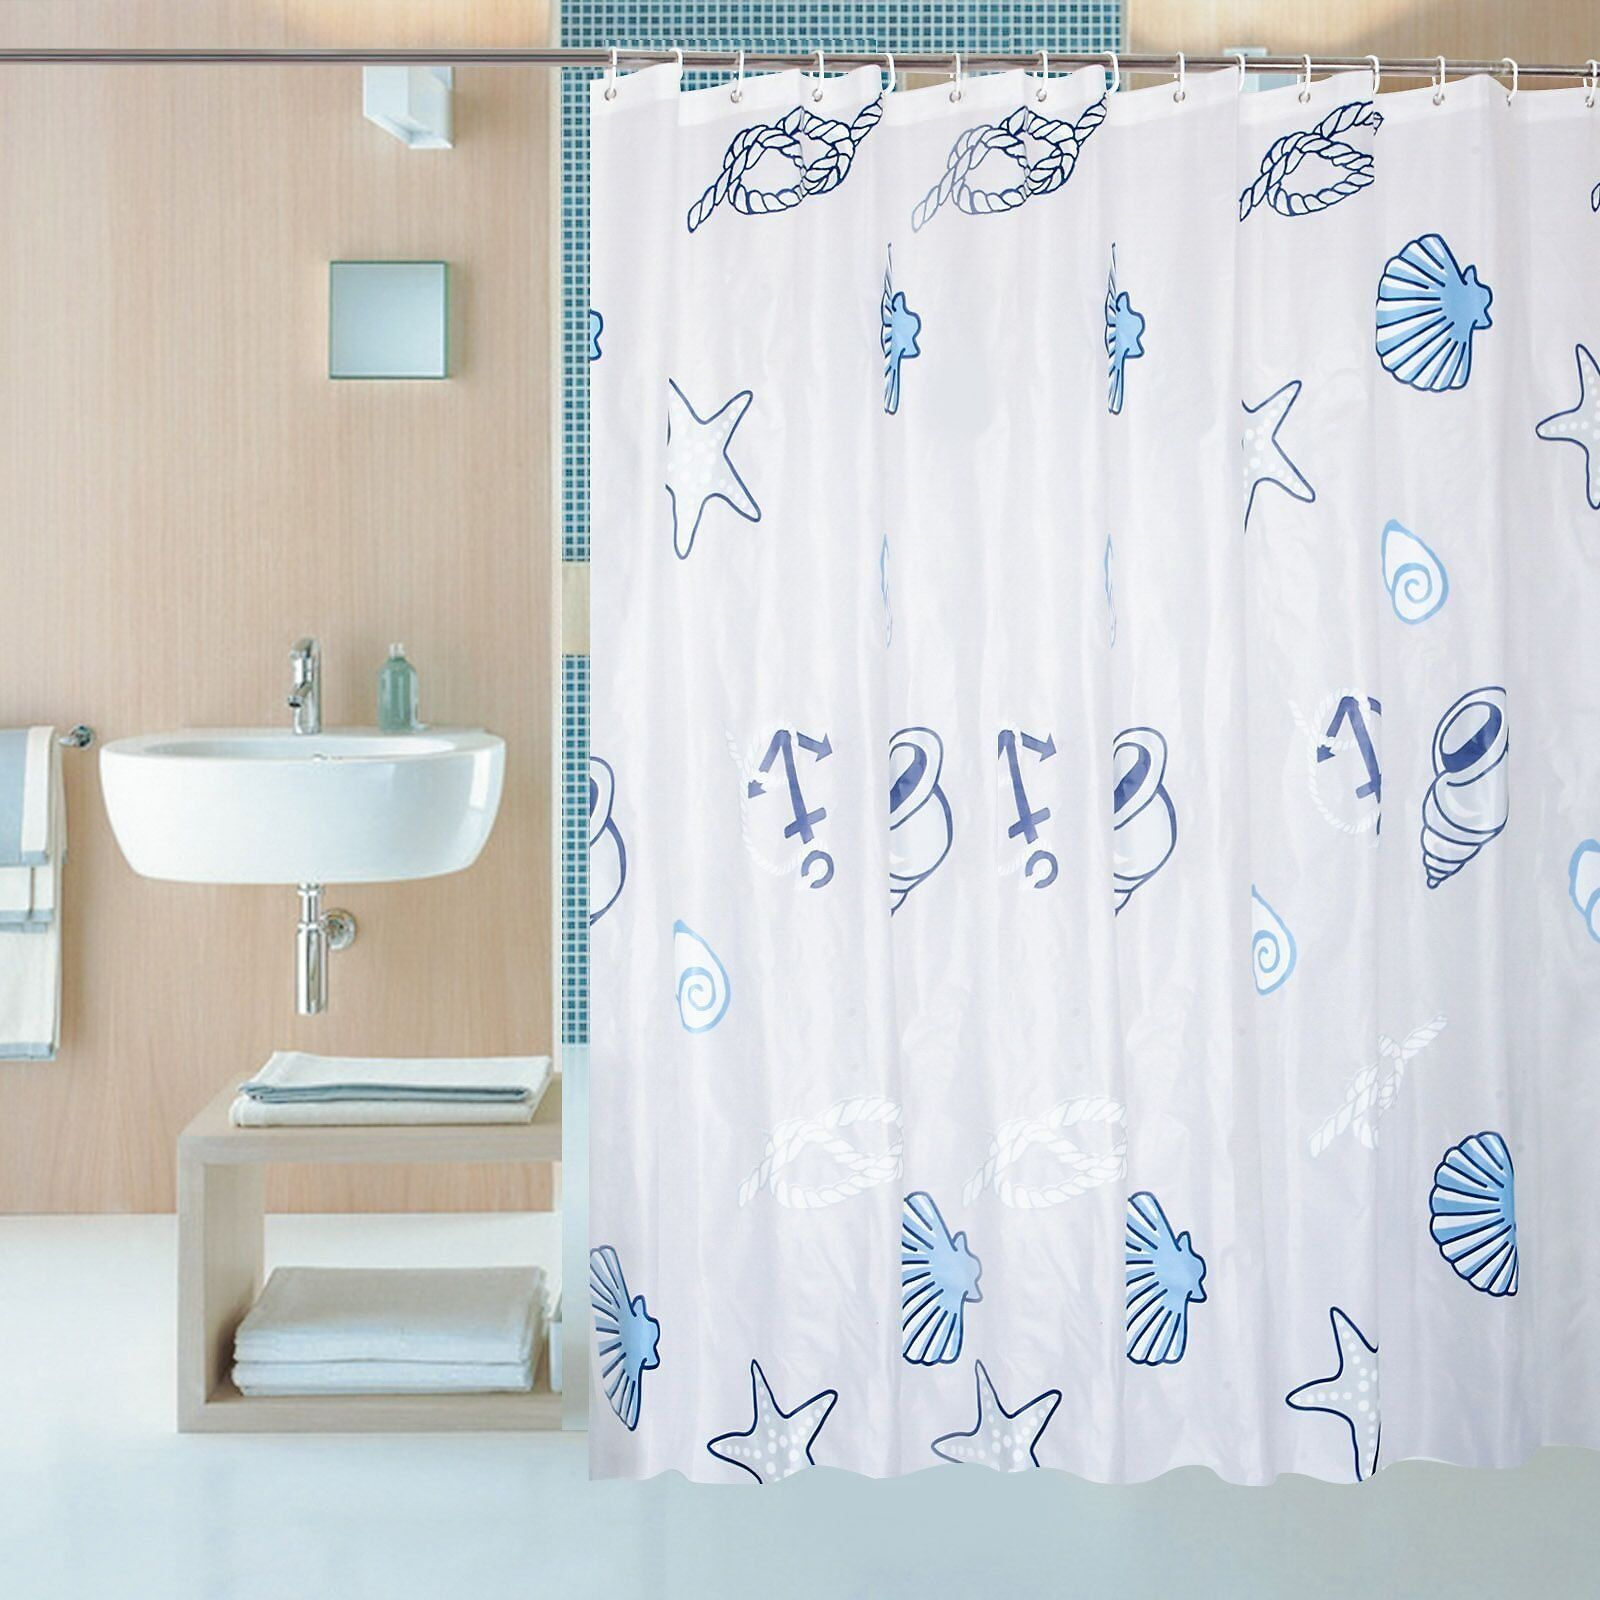 nylon liner curtain allmodern bath berning reviews pdp liners shower